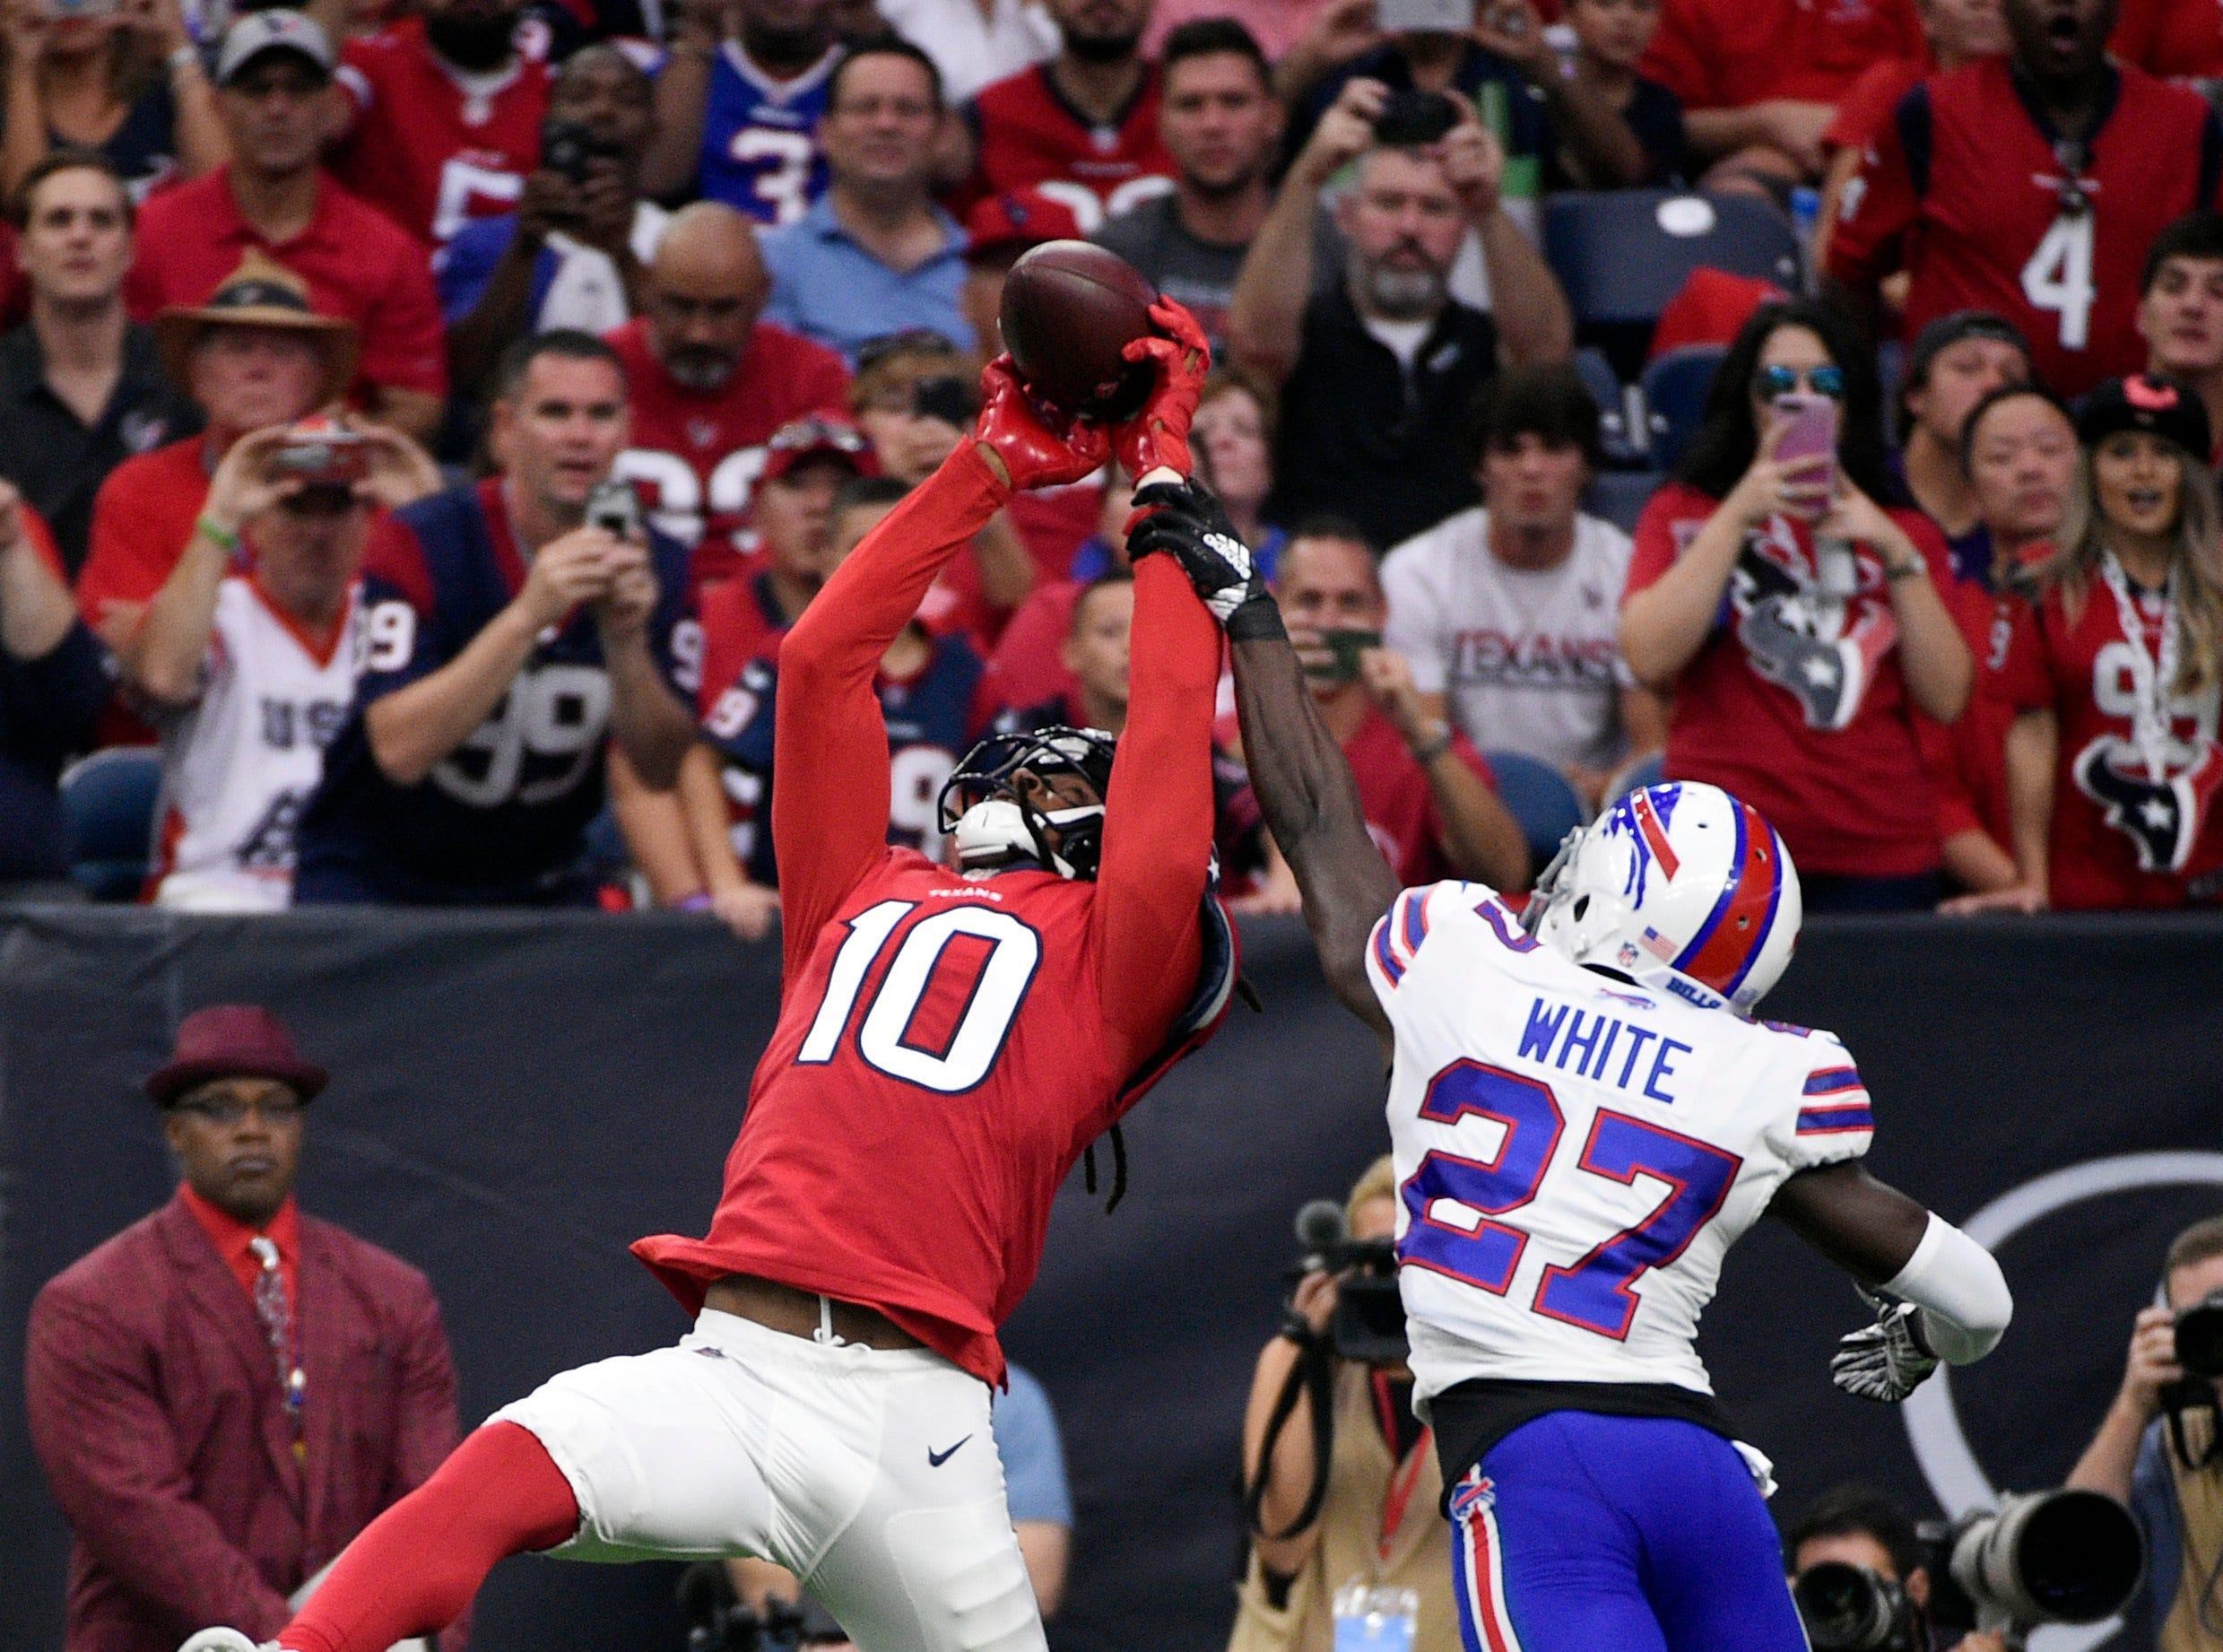 Houston Texans wide receiver DeAndre Hopkins (10) pulls in a catch for a touchdown in front of Buffalo Bills cornerback Tre'Davious White (27) during the first quarter of an NFL football game, Sunday, Oct. 14, 2018, in Houston. (AP Photo/Eric Christian Smith)